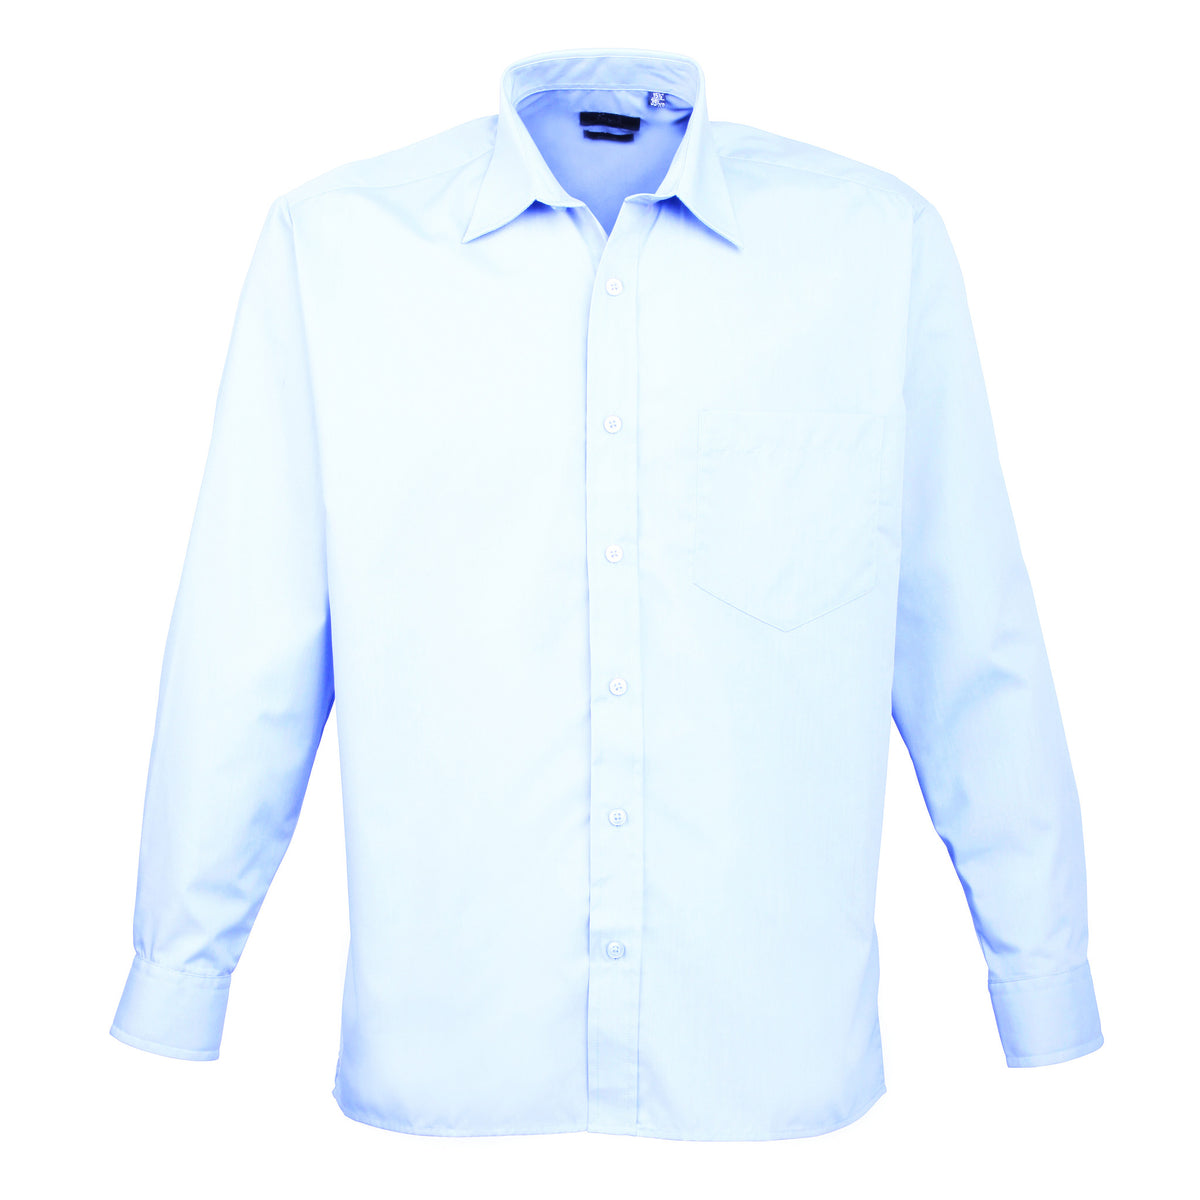 Premier Poplin Shirts (Sapphire, Turquoise, Light Blue, Mid Blue, Royal) - peterdrew.com  - 4